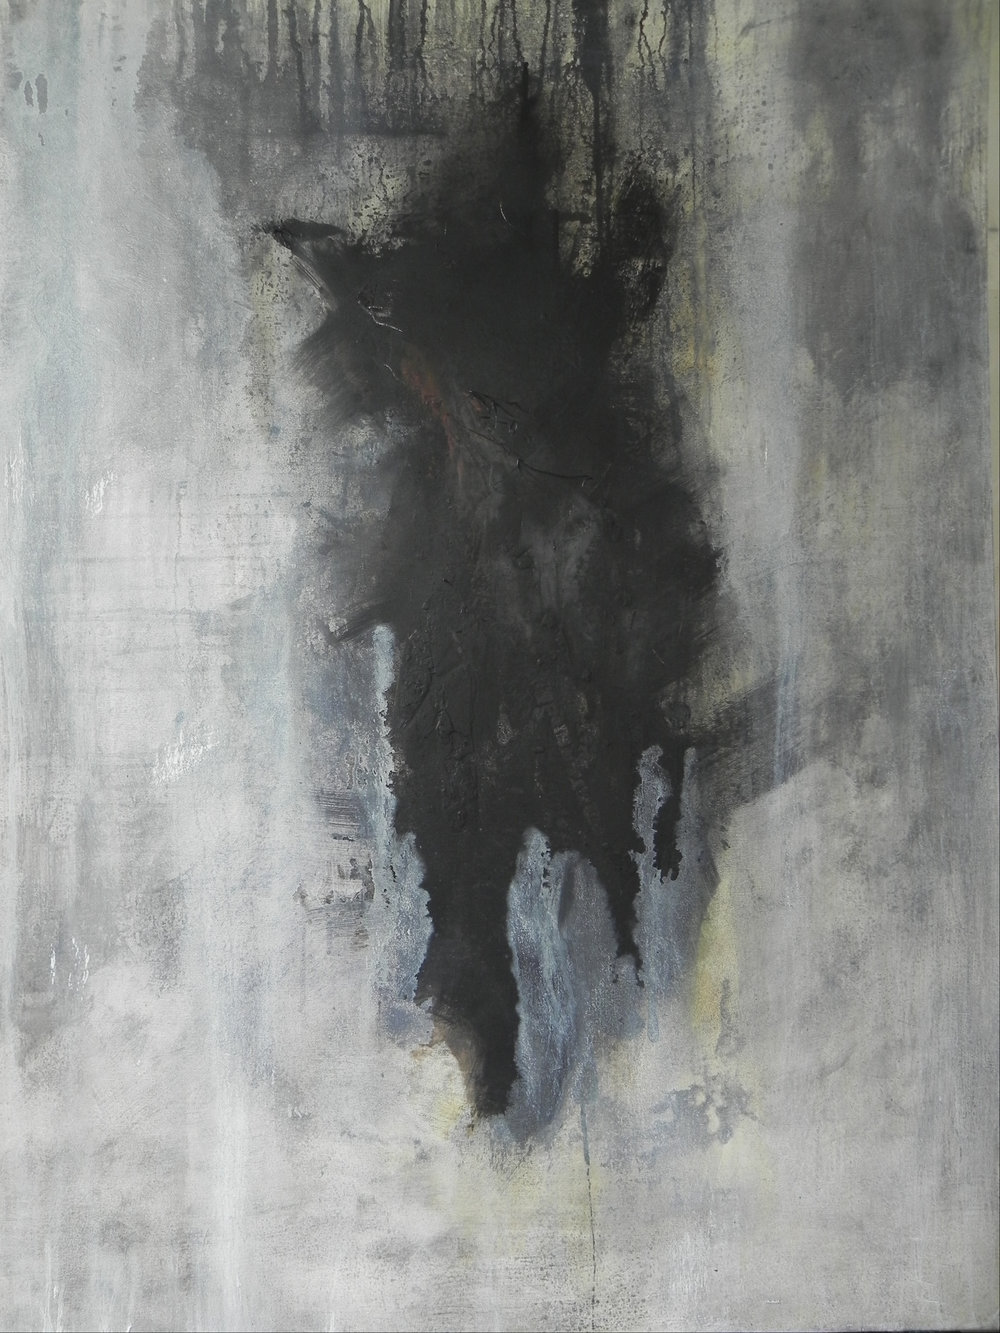 "SHADOW, 2014. 40"" X 30"". Mixed Media on Canvas. Copyright © Karen Santos 2014."